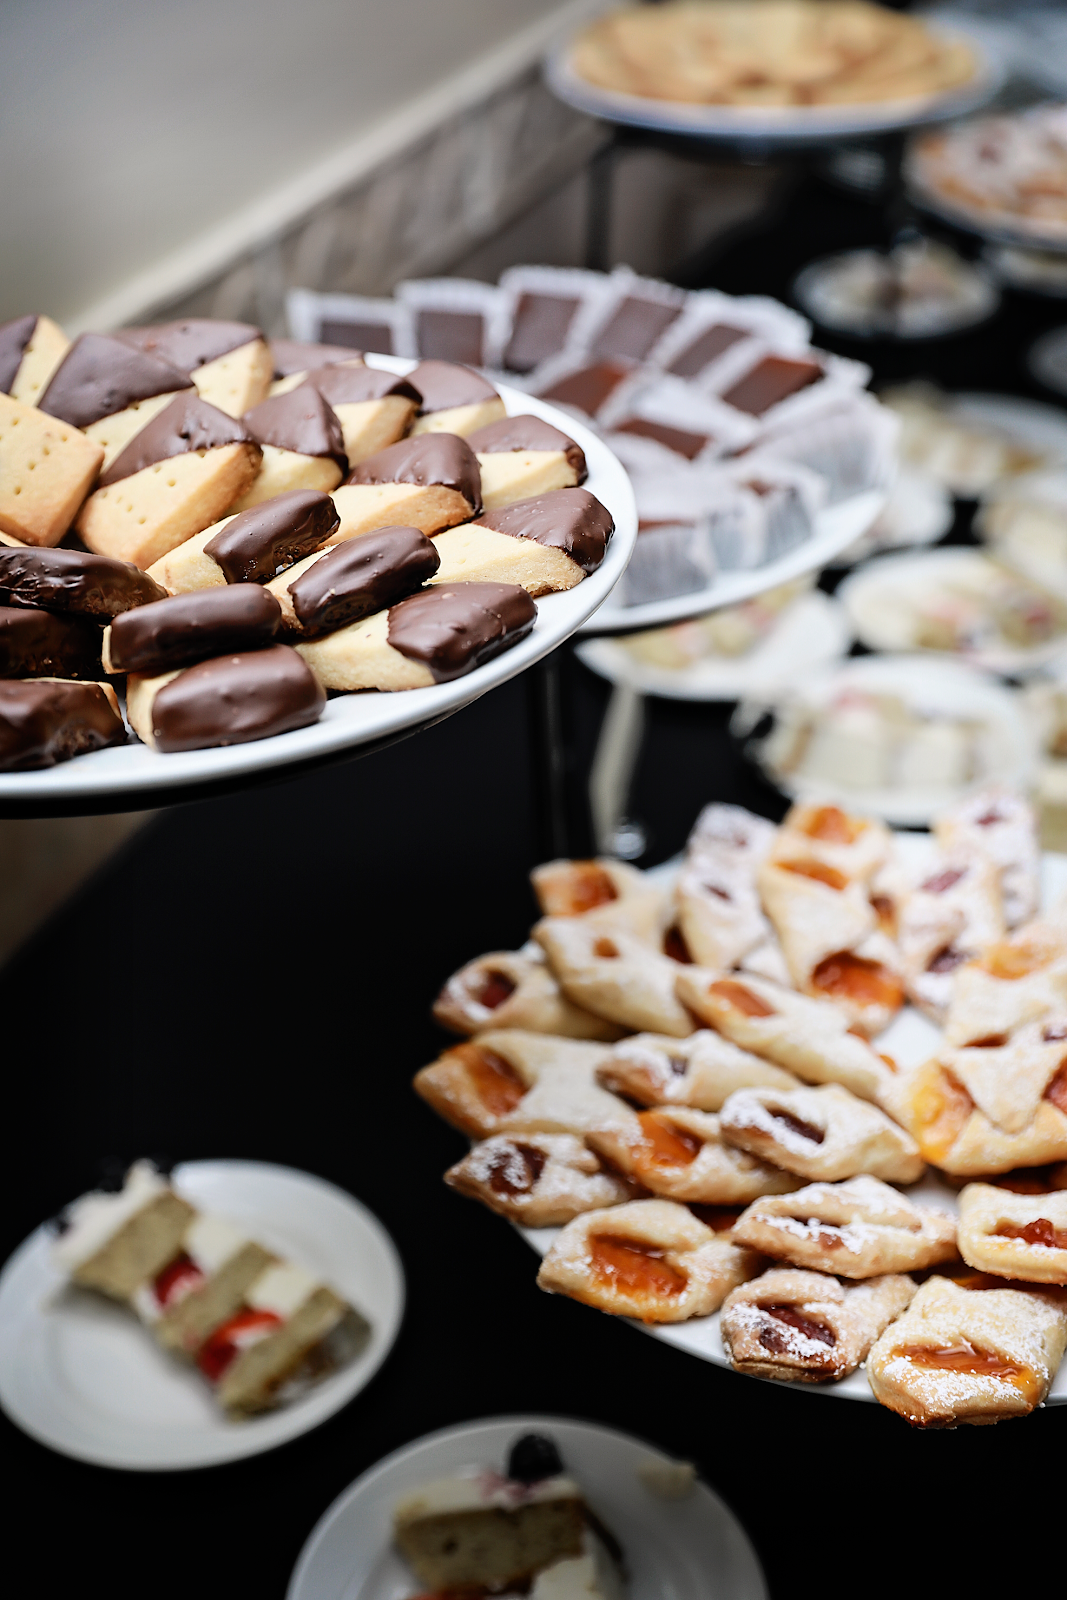 Chocolate dipped short bread cookies and kolacky cookies to reflect the grooms' English and Polish background. Photo by: Alicia's Photography